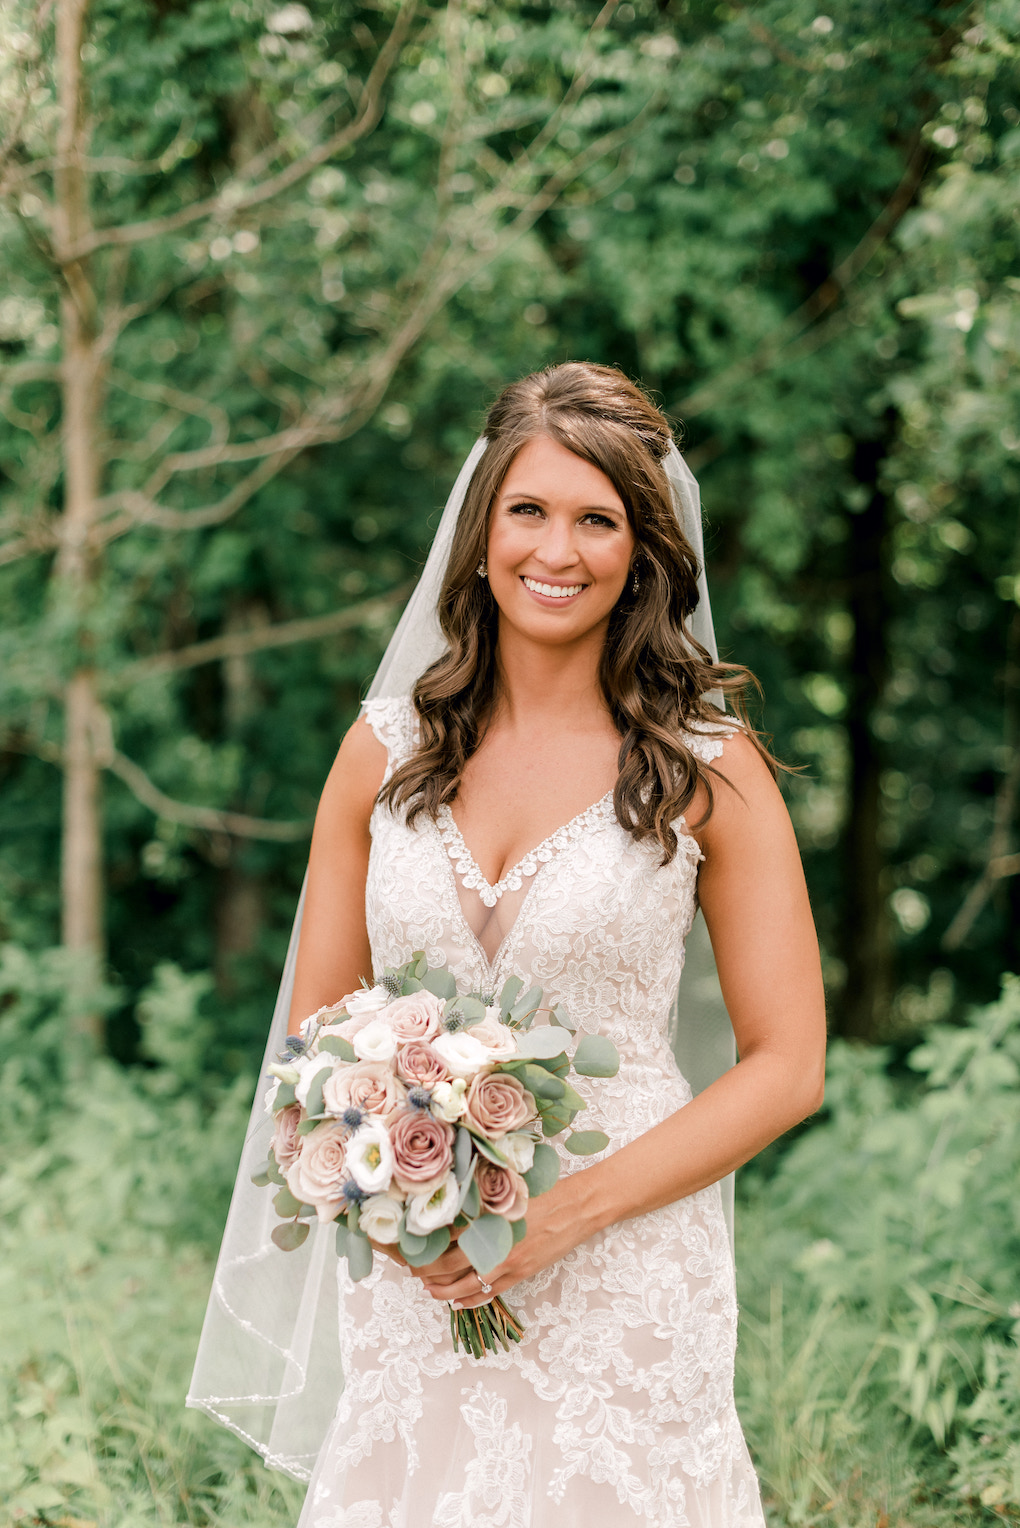 Romantic wedding dress and bouquet ideas: Romantic Delicate Summer Wedding in Pittsburgh planned by Exhale Events. See more at exhale-events.com!